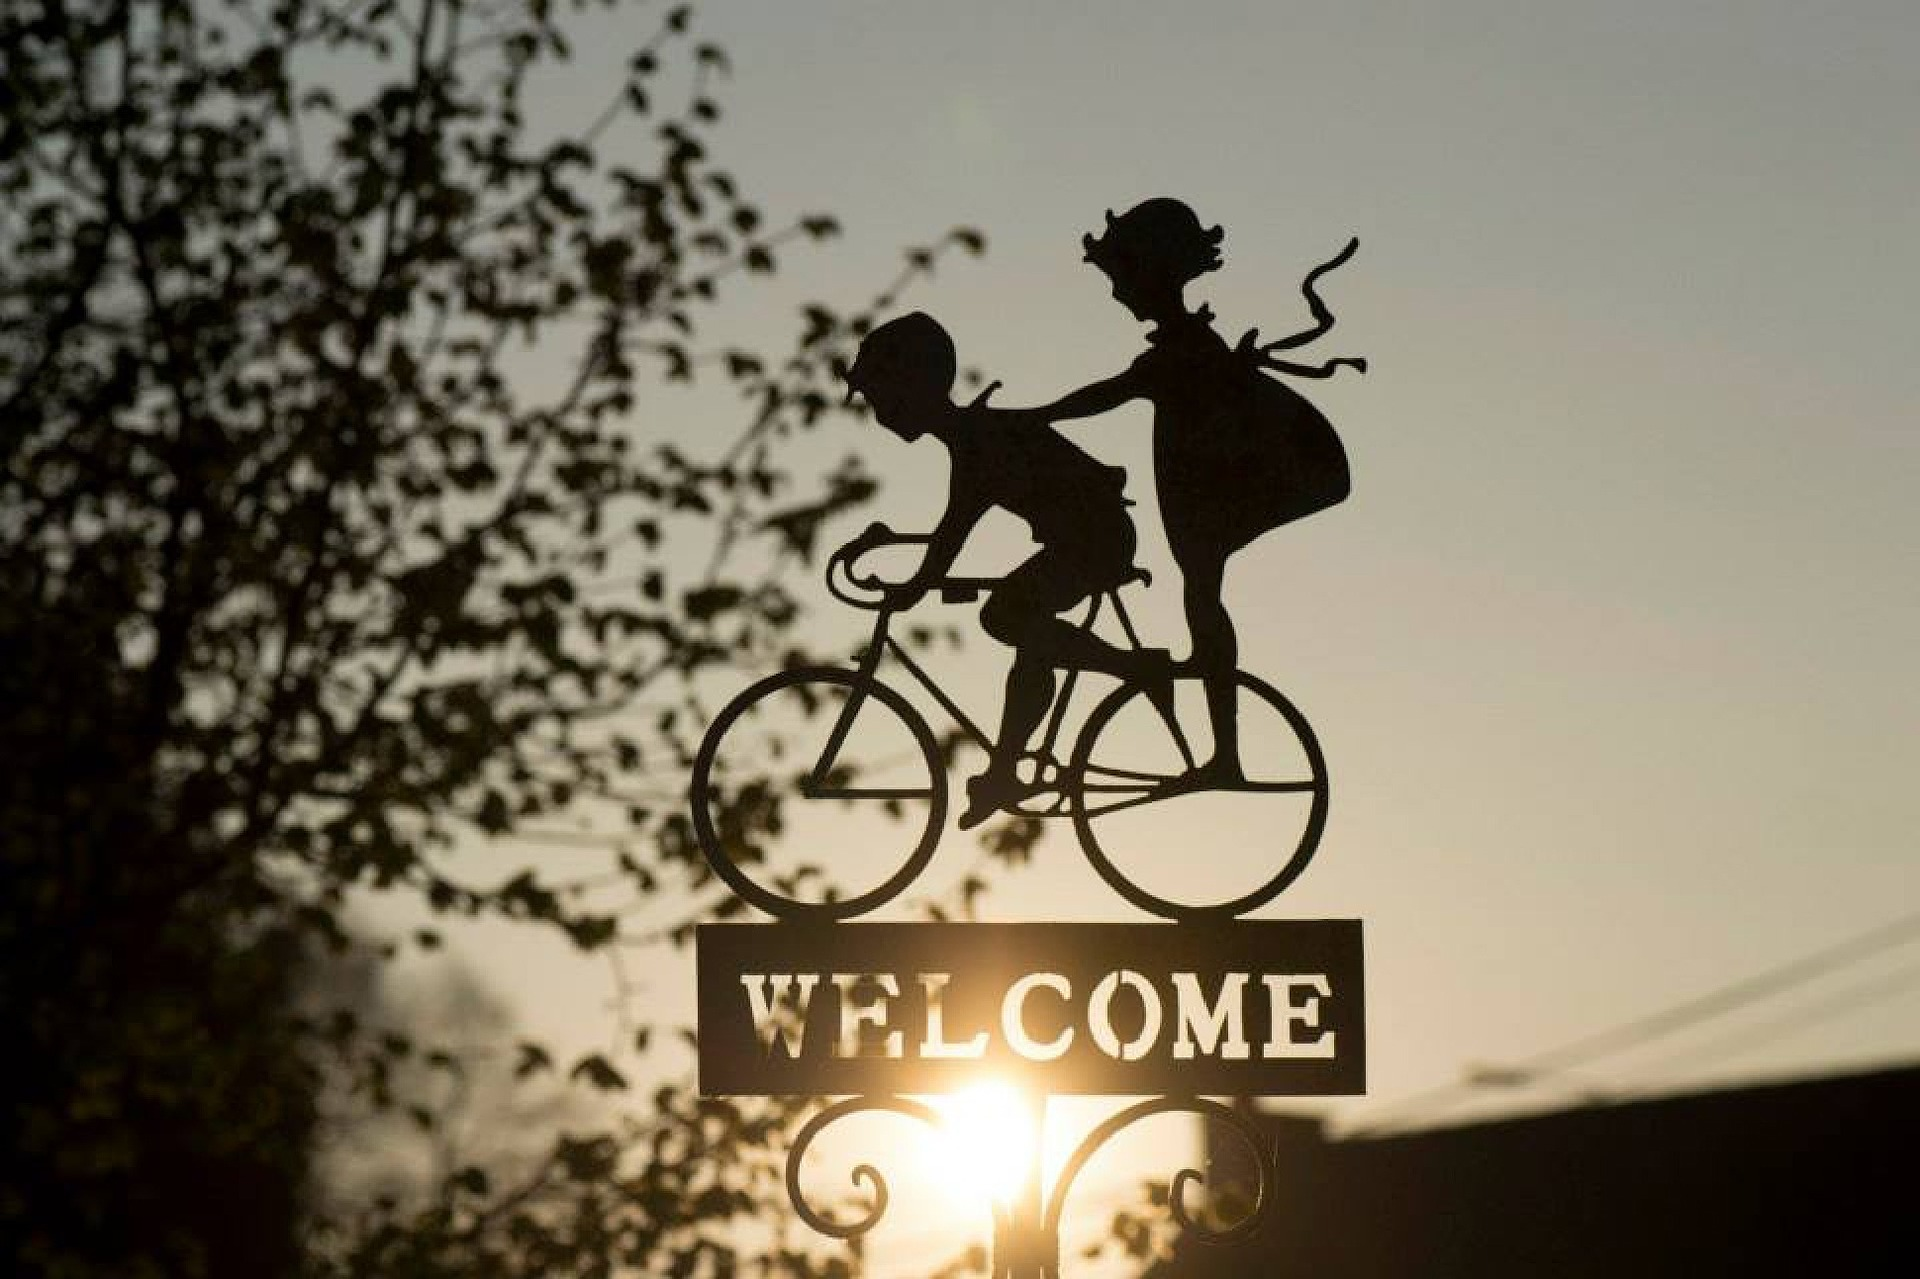 Welcome on a bicycle in the air